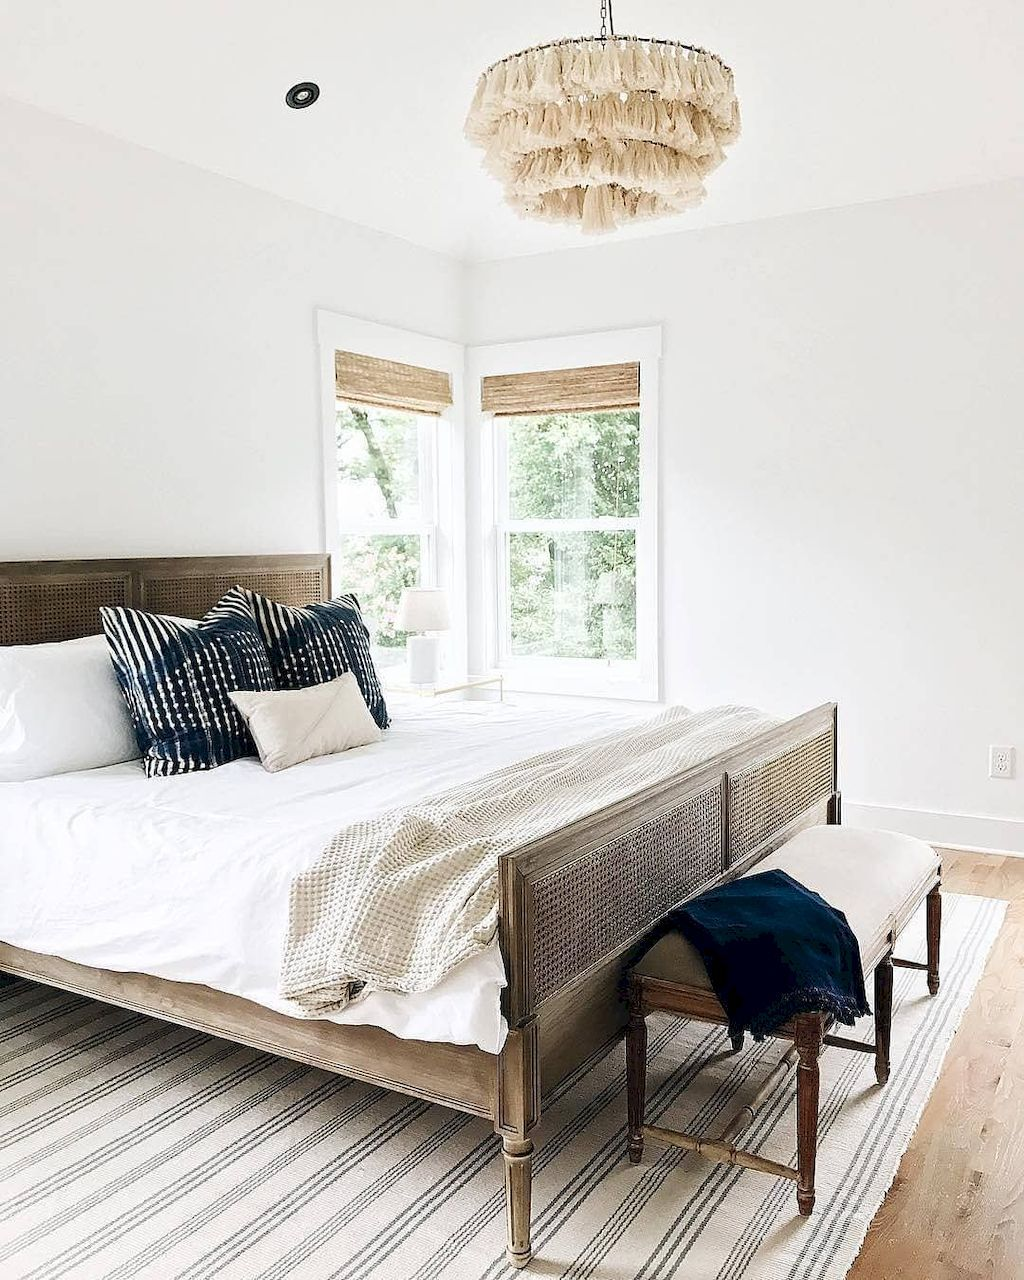 25 Stunning Transitional Bedroom Design Ideas: 30+ Famous Bedroom Ideas With Beautiful Rug Decor